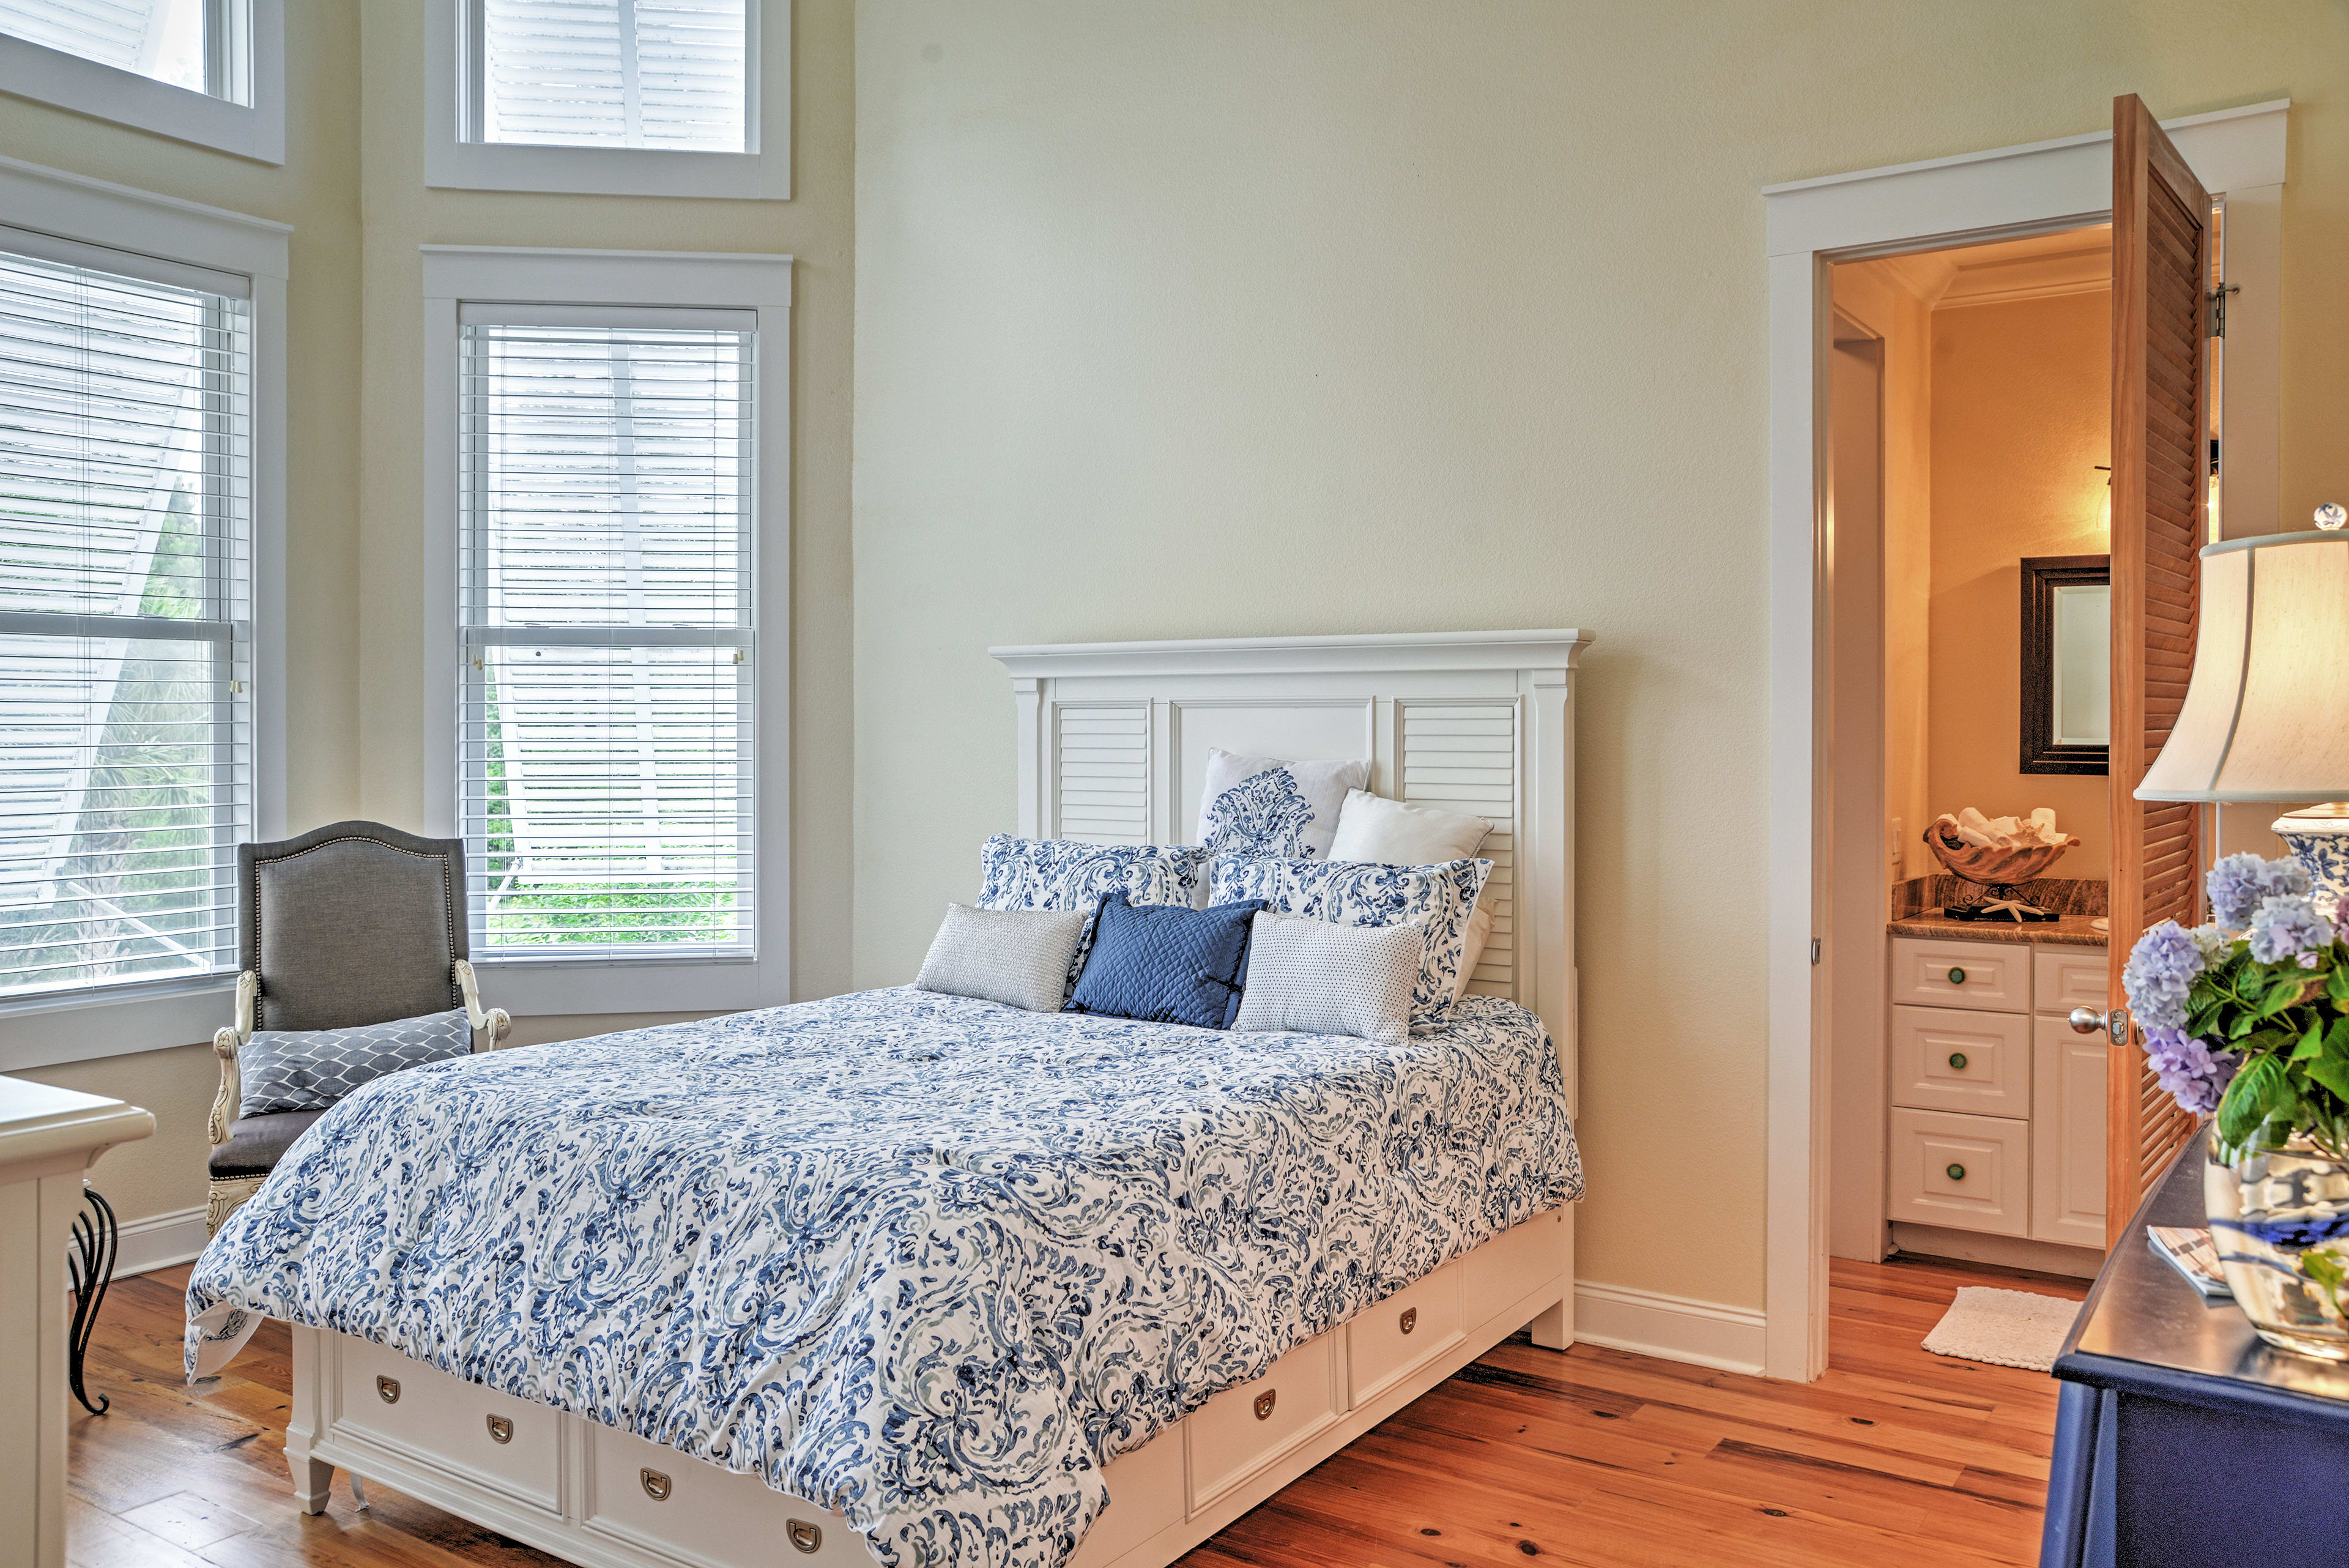 Every bed in this house boasts cozy linens!